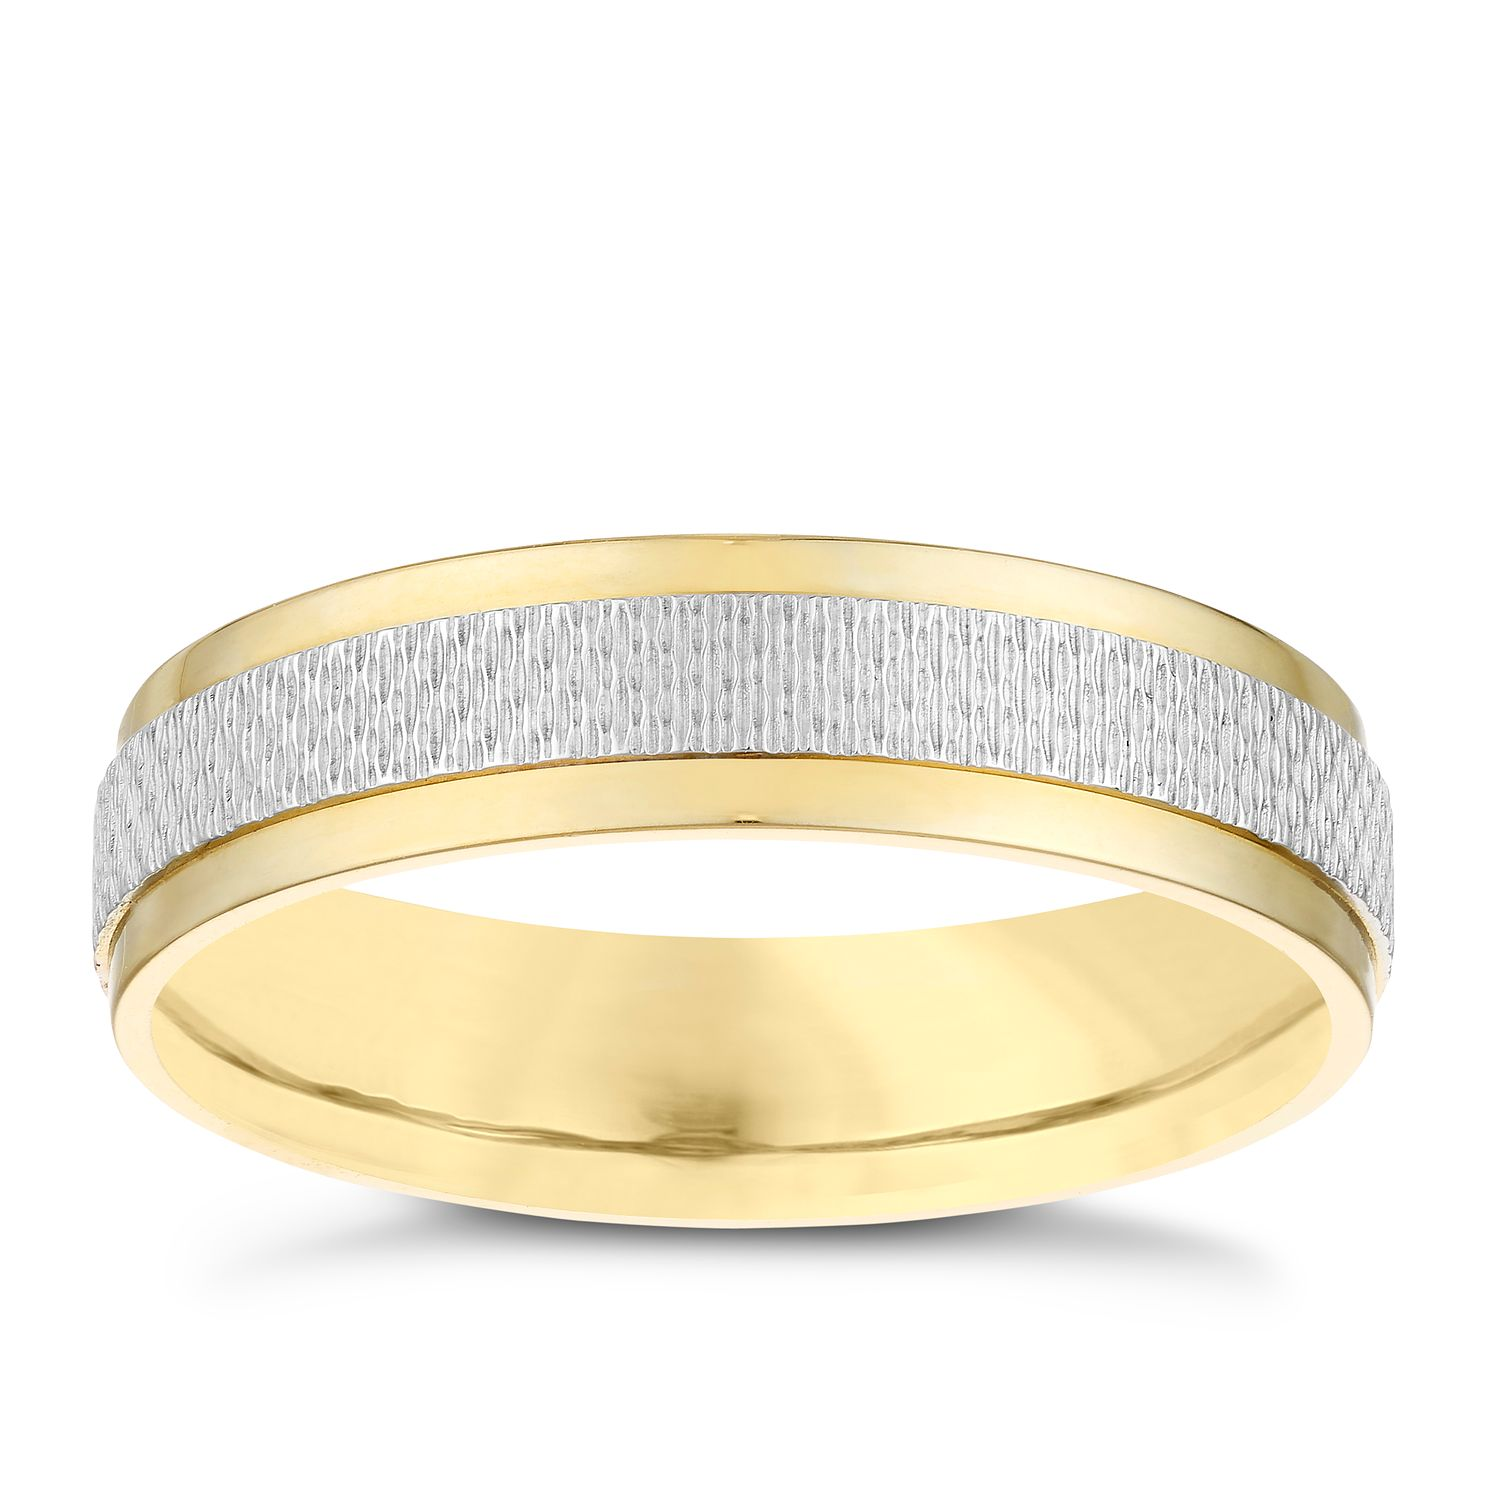 9ct White & Yellow Gold 5mm Patterned Wedding Band - Product number 3984915